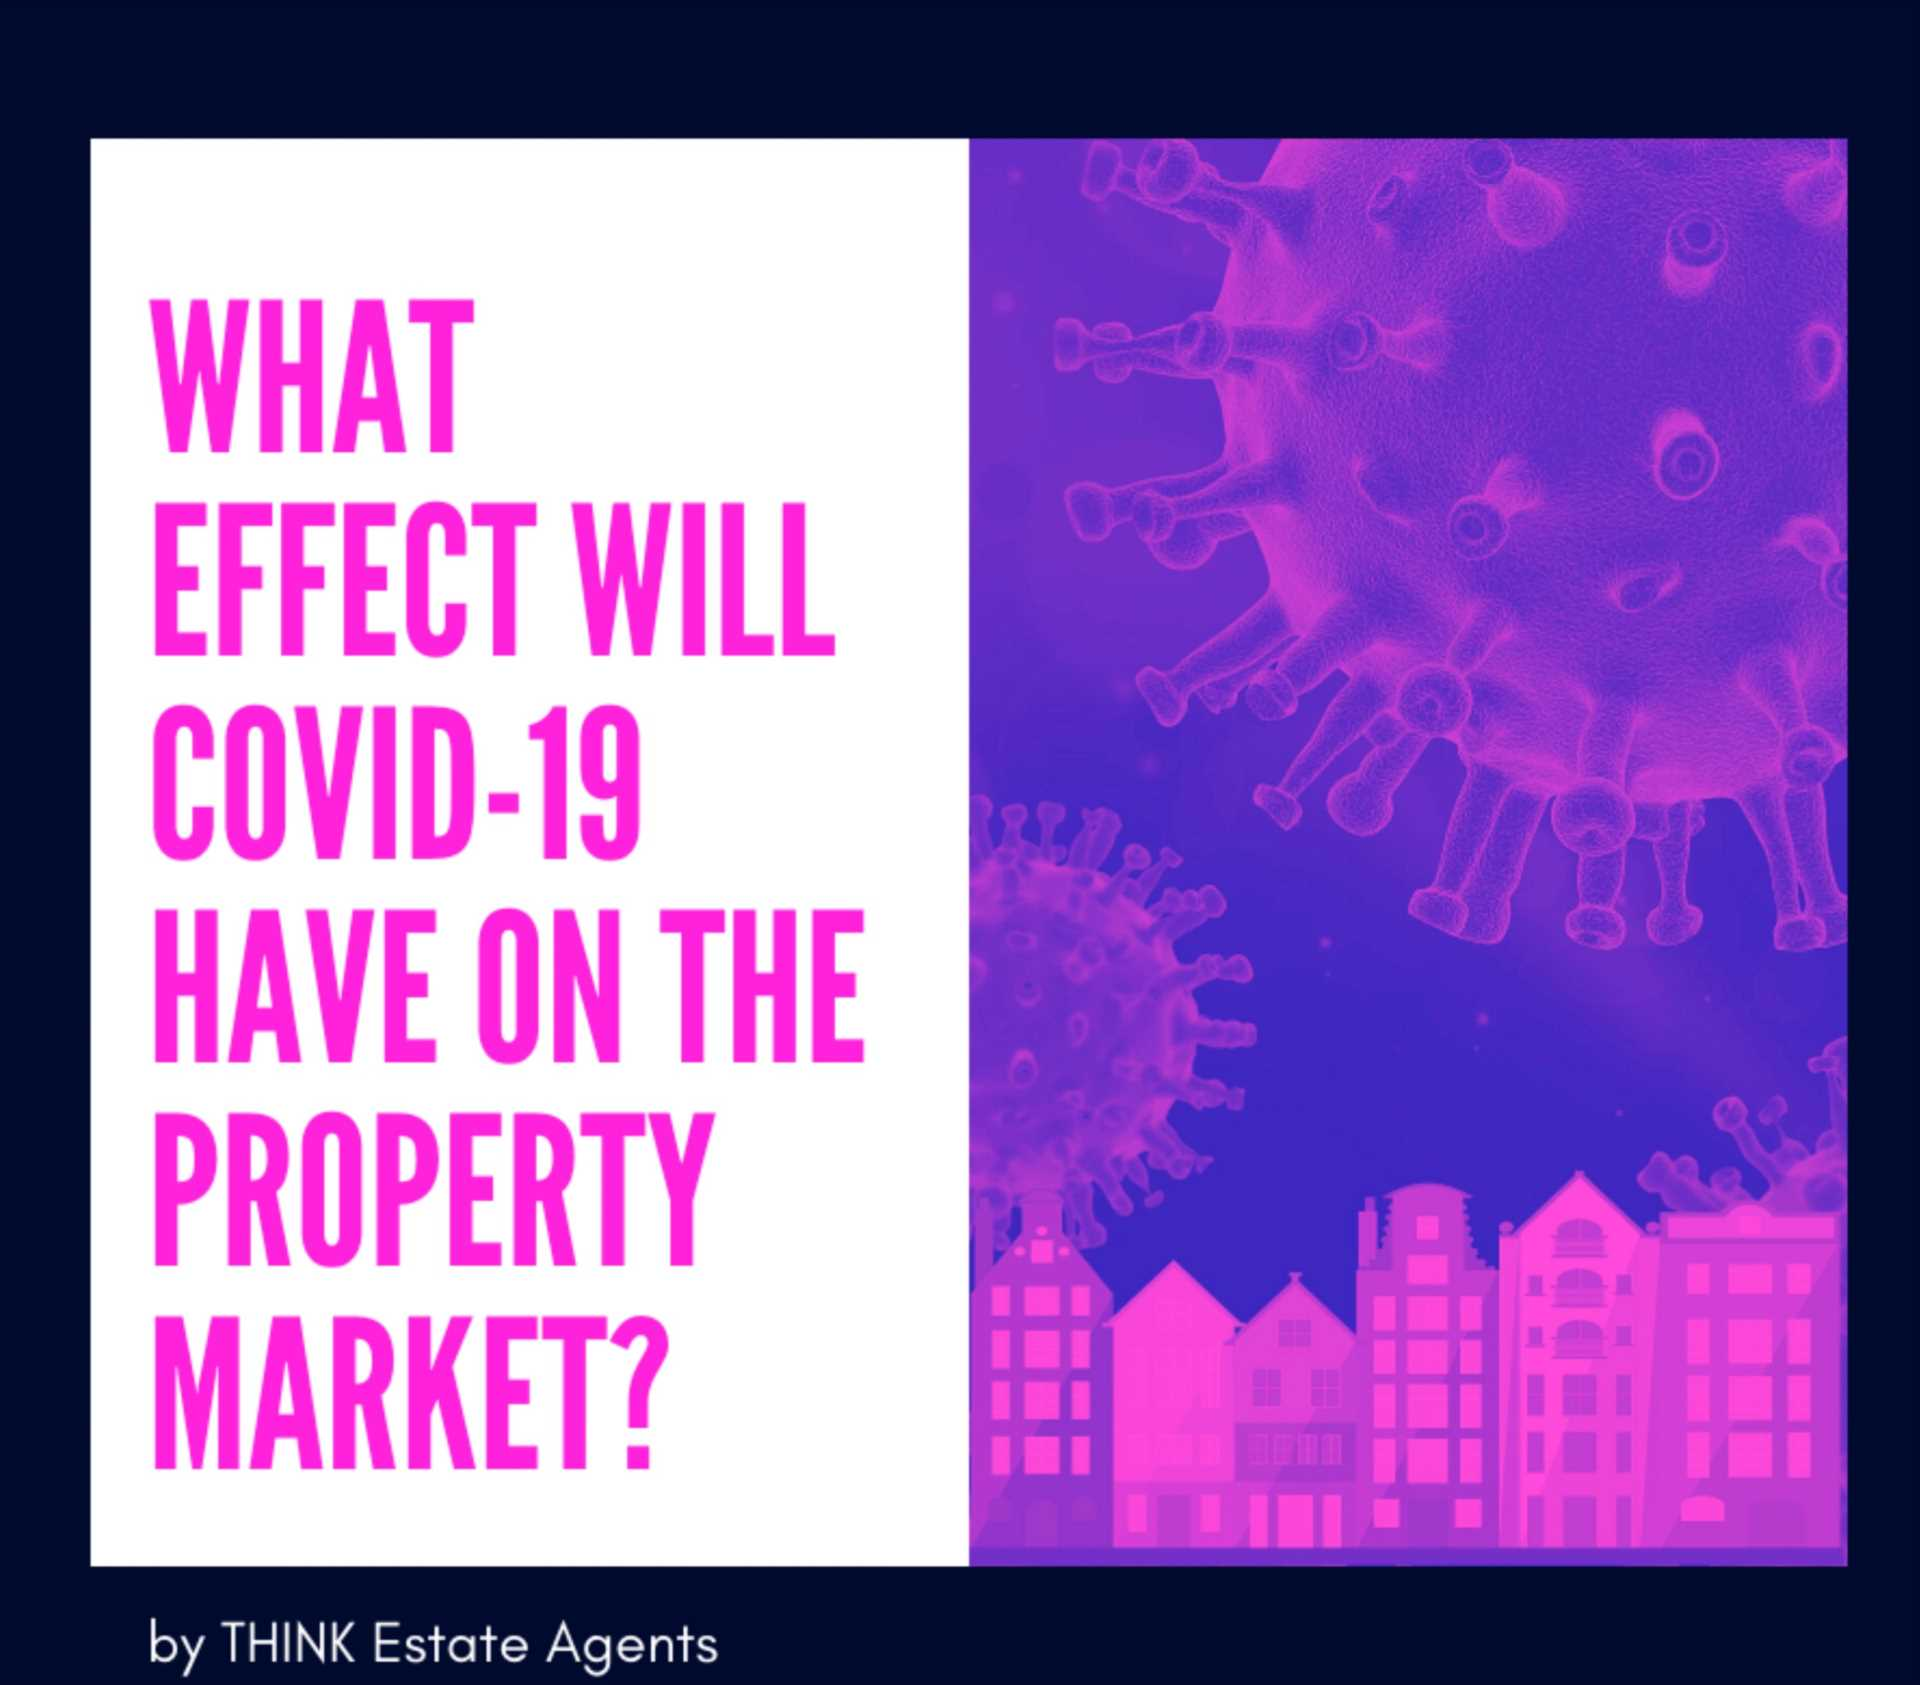 what effect will covid-19 have on the property market?